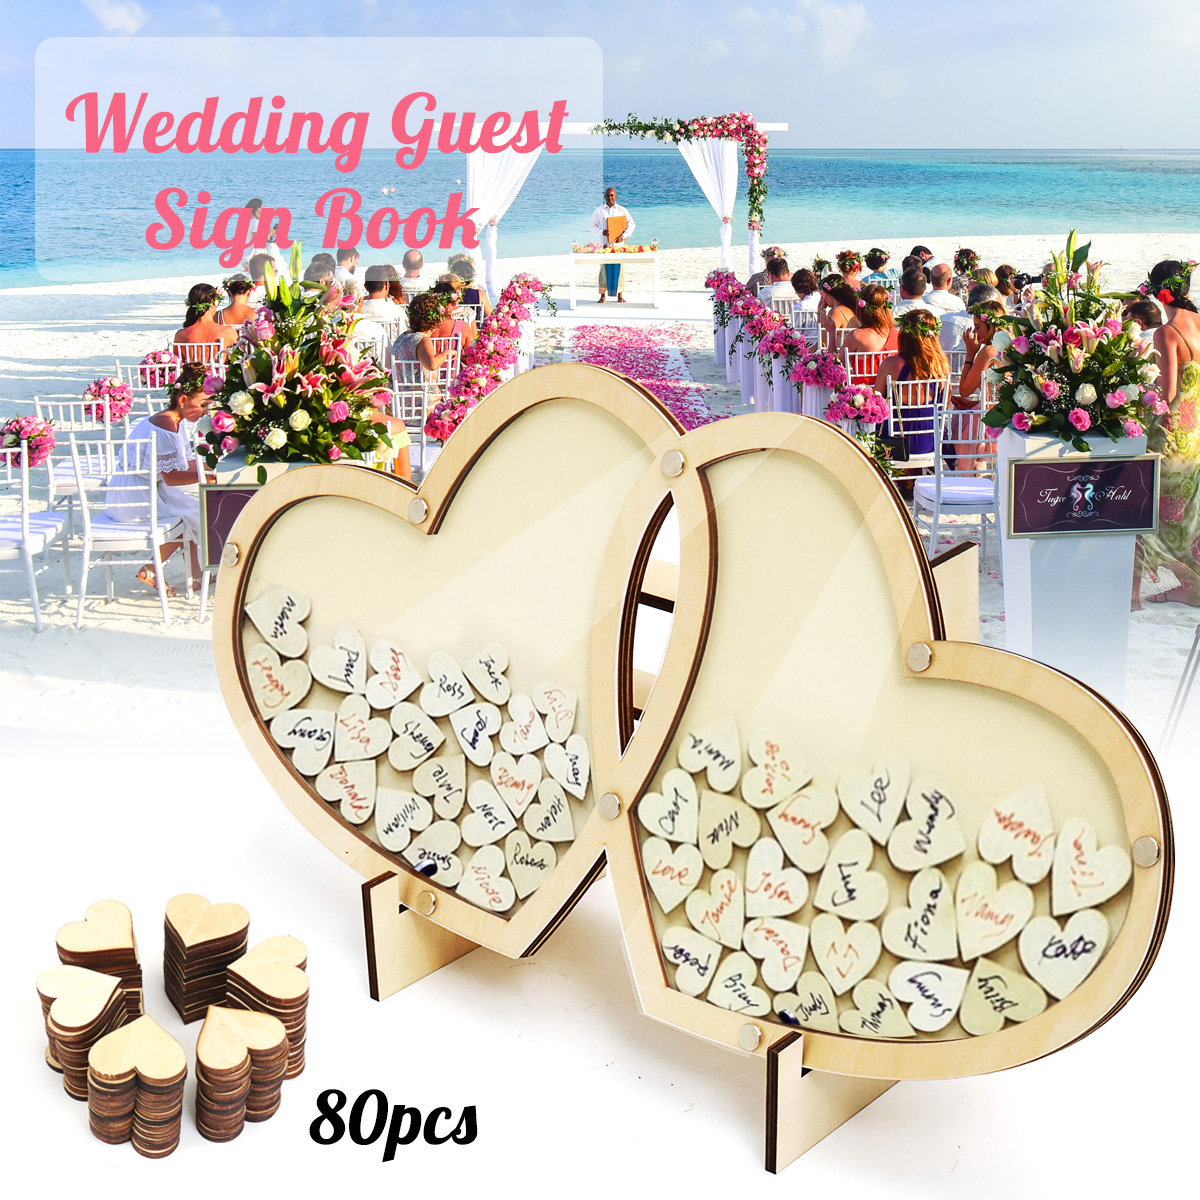 Personalized 3D Hearts Wedding Guest Book Visit Signature Sign Guestbooks Wooden Double Heart Pendant Drop Ornaments Party Decor